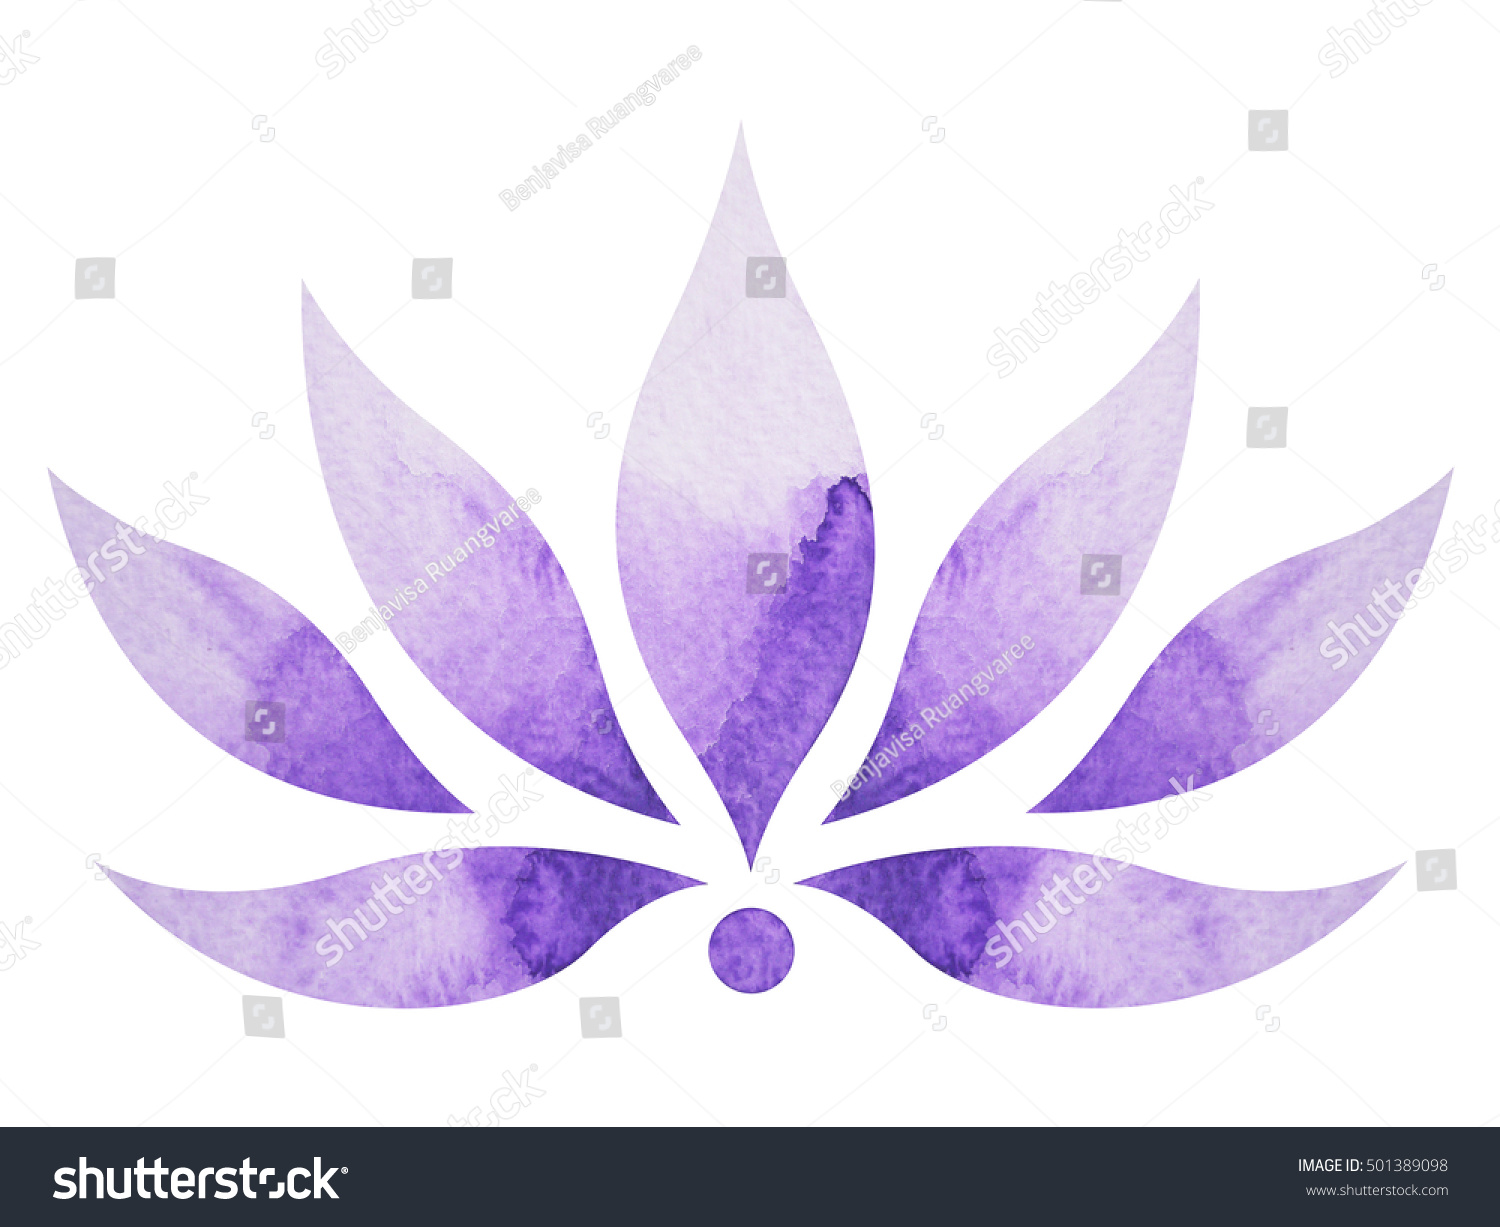 Crown chakra symbol concept flower floral stock illustration crown chakra symbol concept flower floral watercolor painting color hand drawn icon logo buycottarizona Image collections